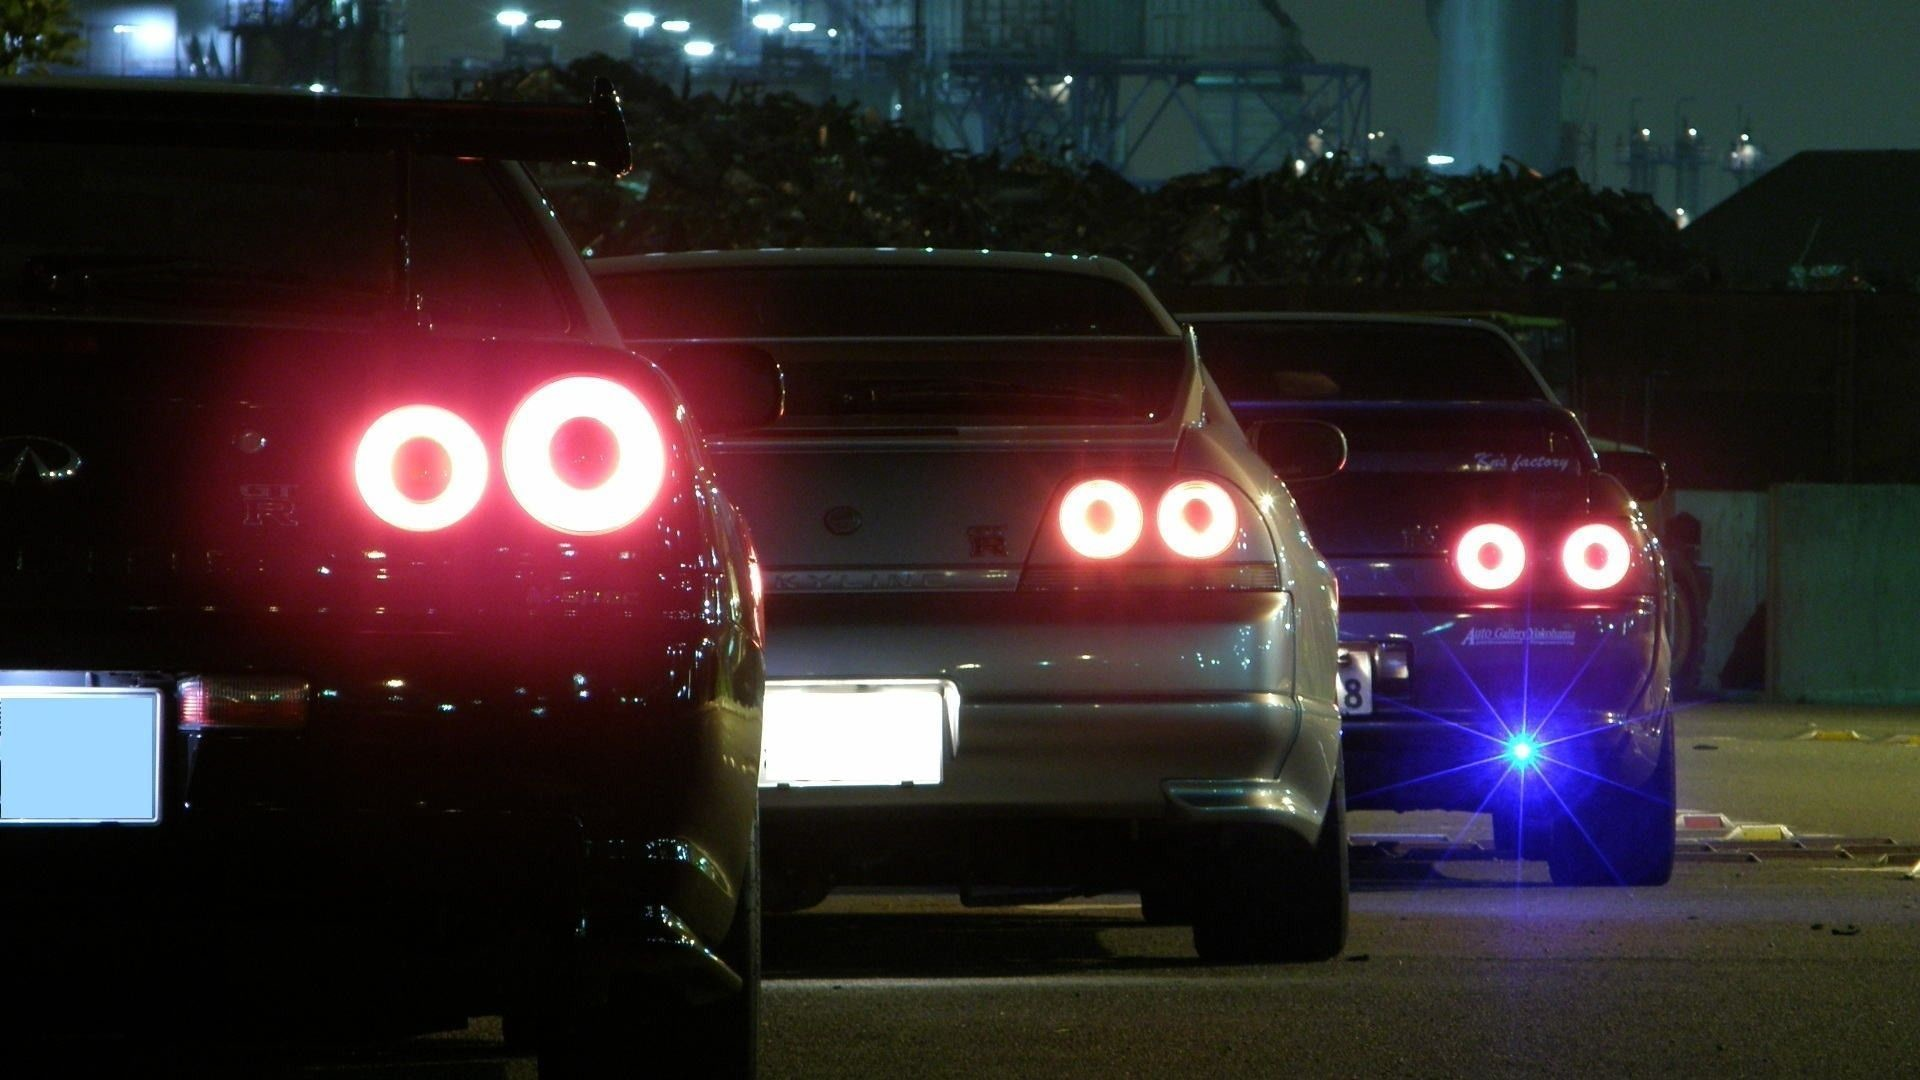 Cars backview vehicles nissan skyline r32 gtr jdm nissan skyline .